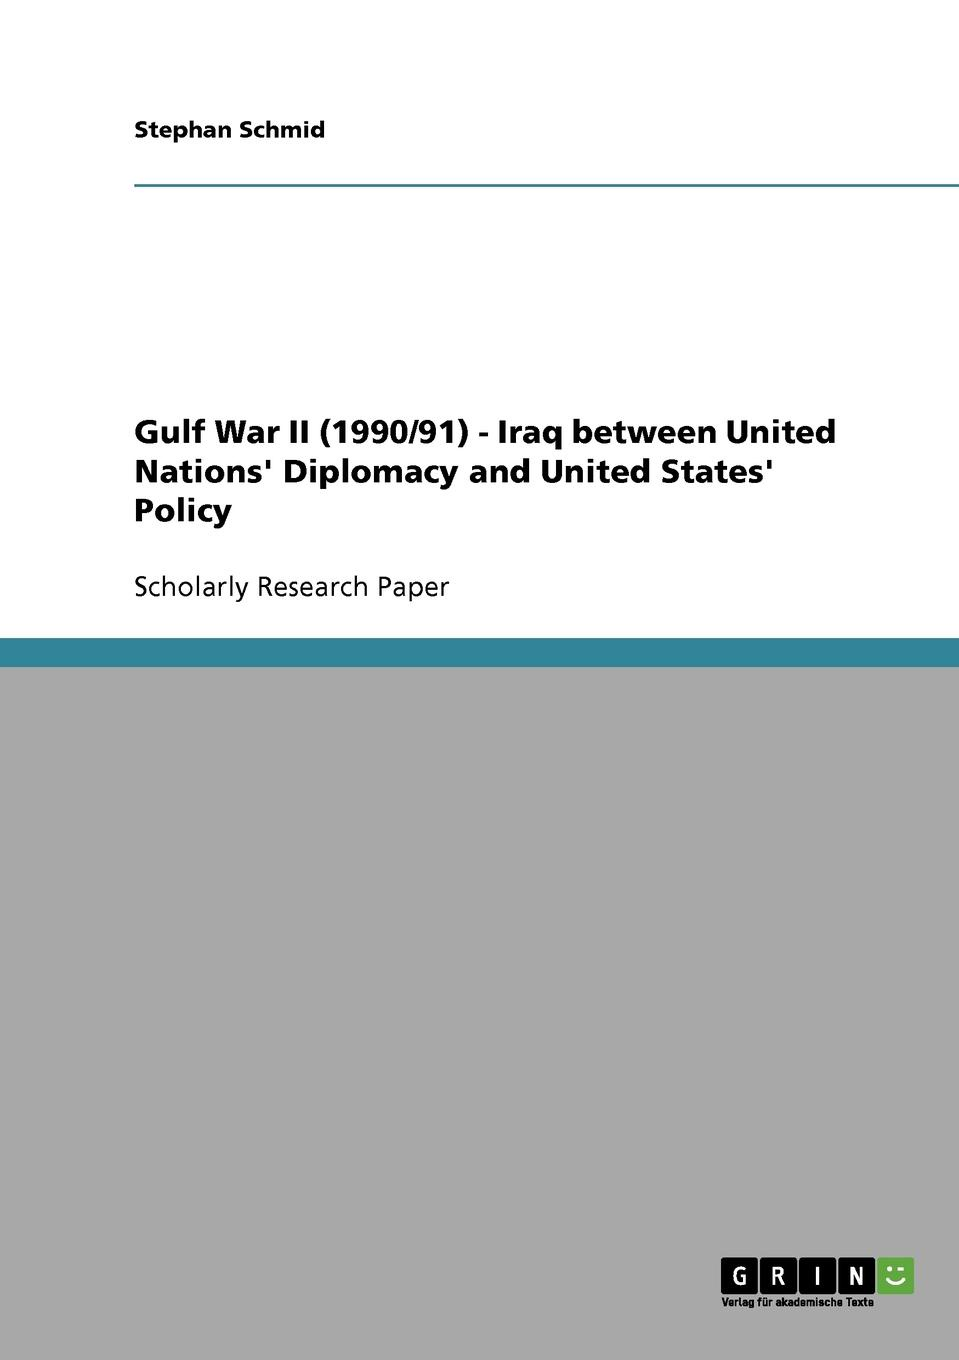 Stephan Schmid Gulf War II (1990/91) - Iraq between United Nations. Diplomacy and United States. Policy richard s lowry the gulf war chronicles a military history of the first war with iraq